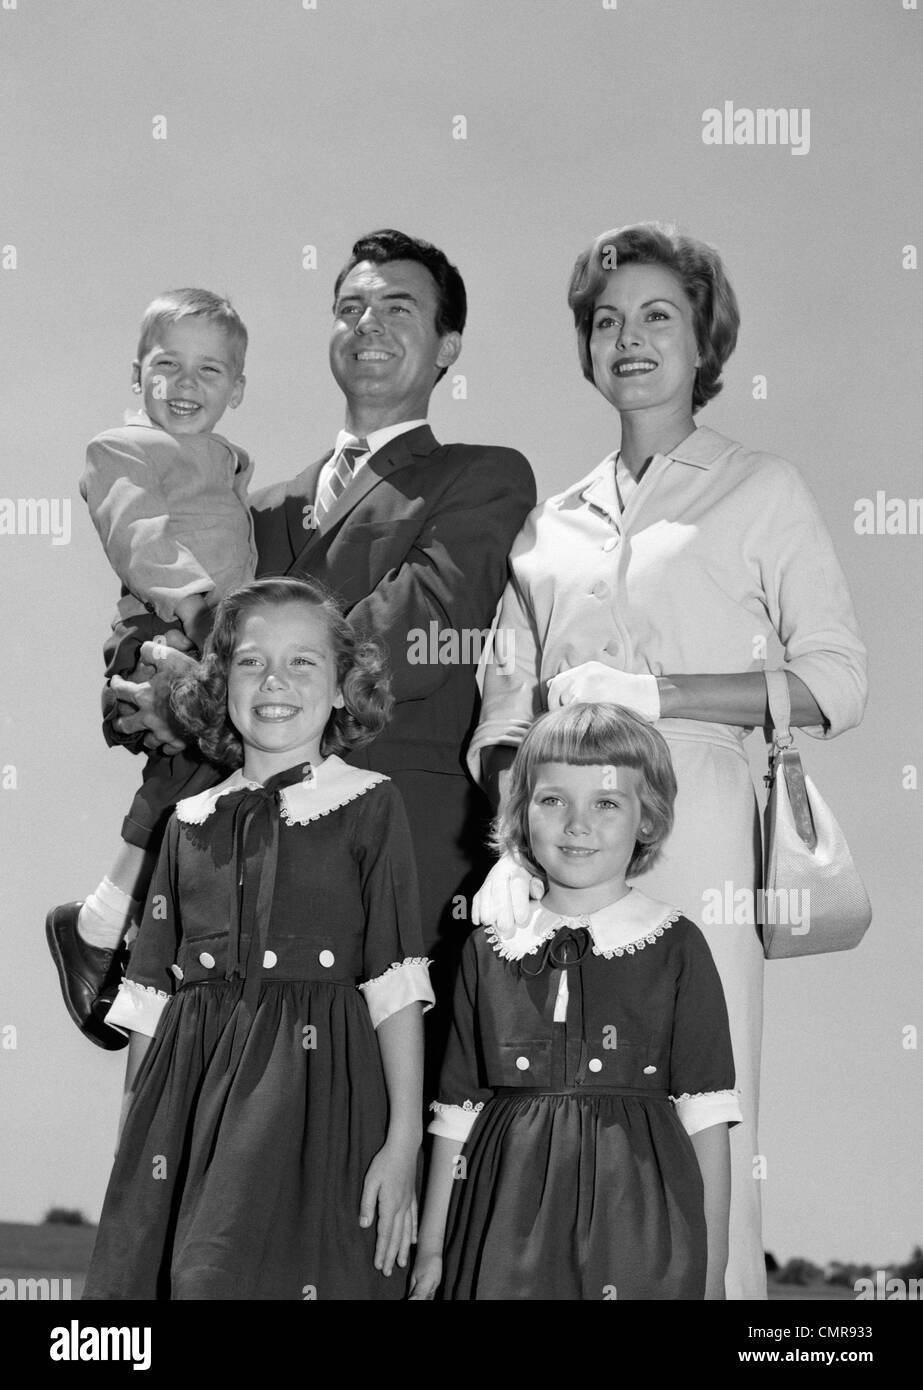 1960s PORTRAIT SMILING FAMILY FATHER MOTHER TWO DAUGHTERS SON STANDING TOGETHER OUTDOORS - Stock Image